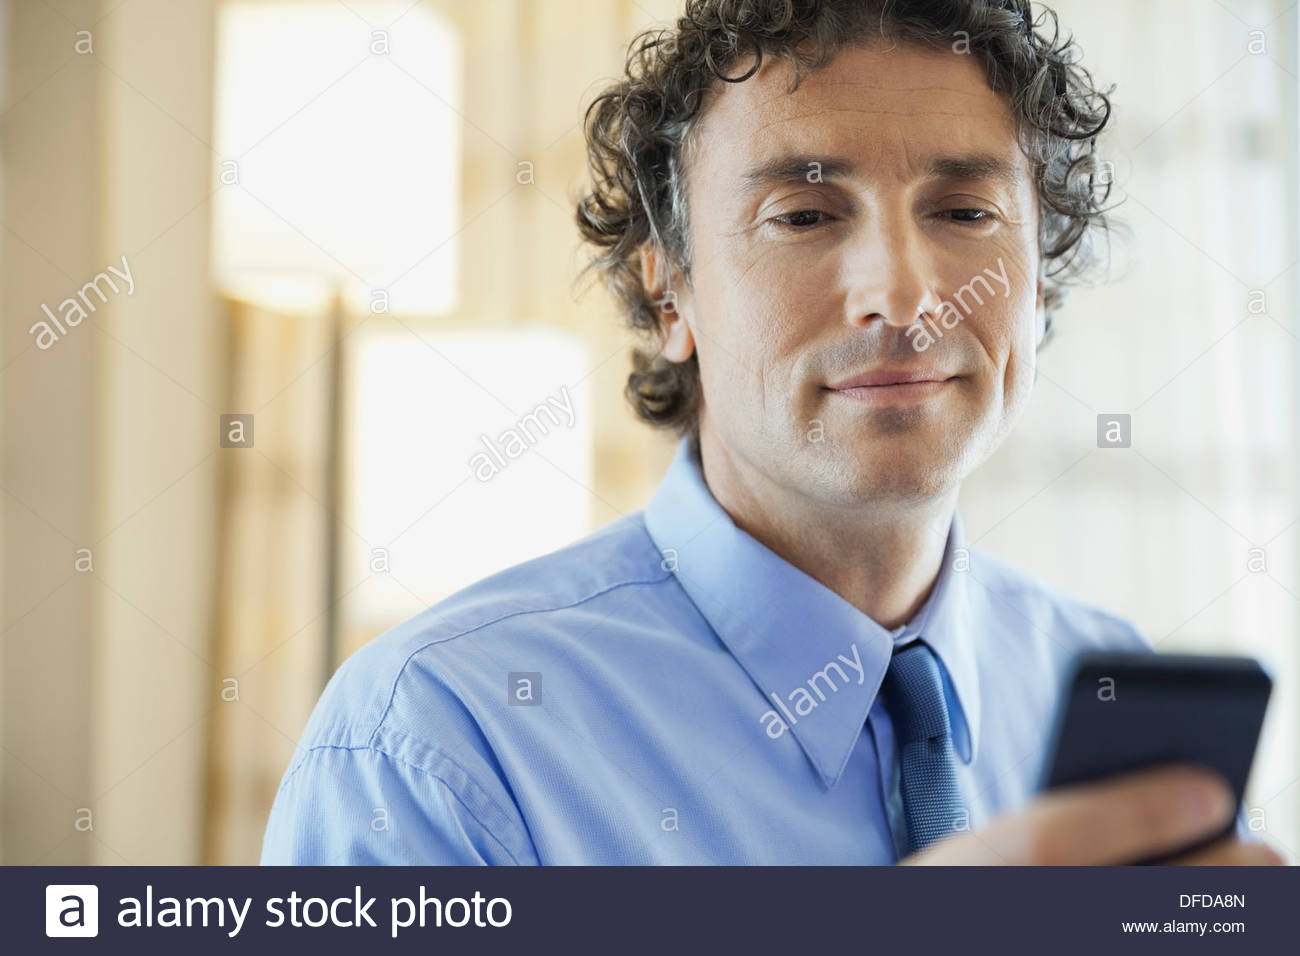 Businessman text messaging in hotel room - Stock Image